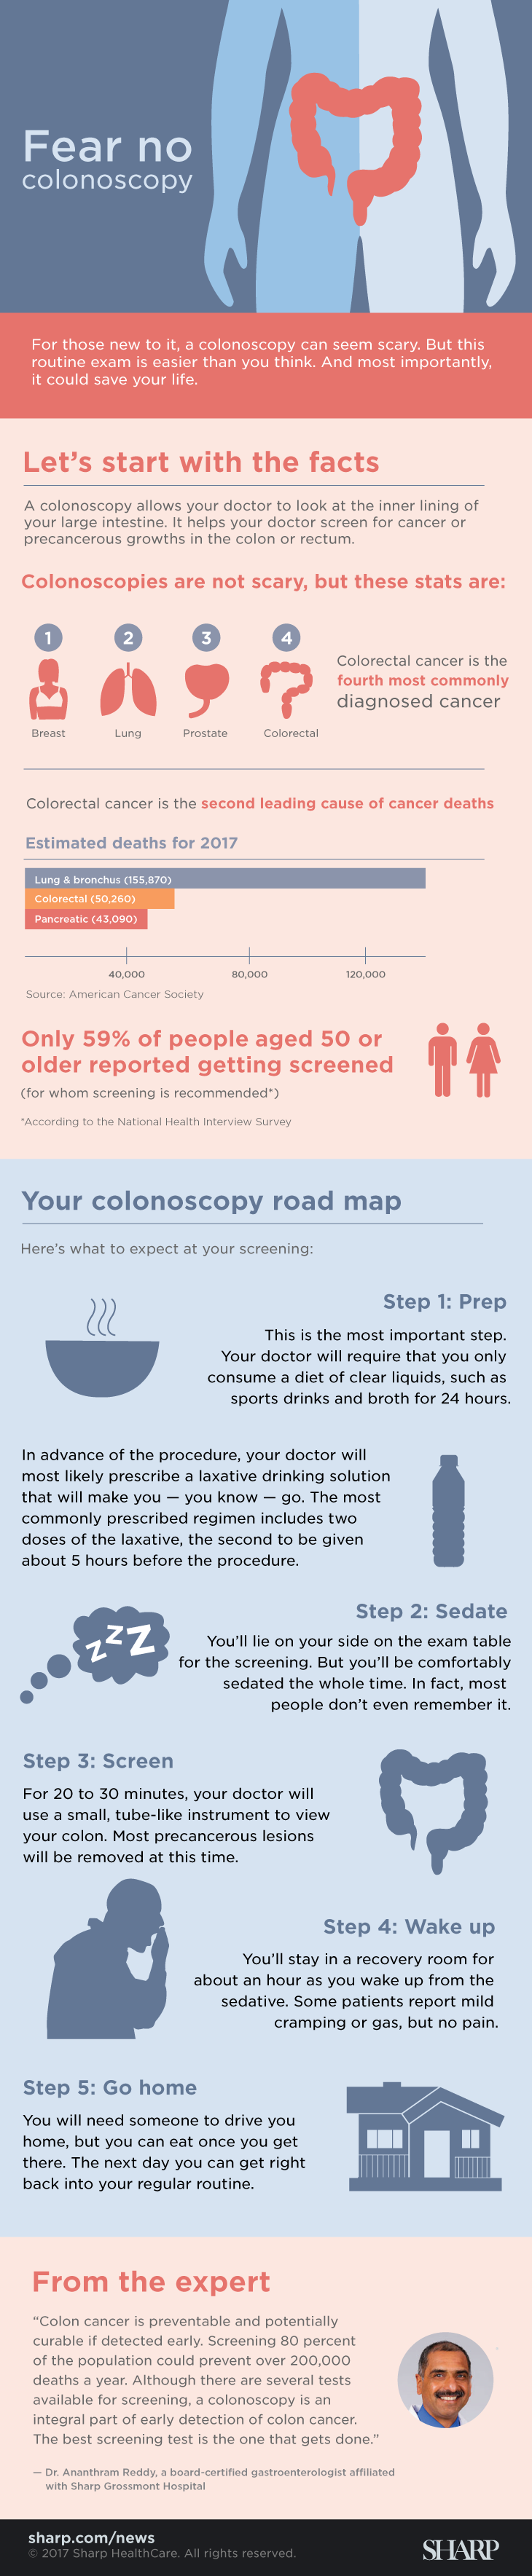 Fear no colonoscopy (infographic). For those new to it, a colonoscopy can seem scary. But this routine exam is easier than you think. And most importantly, it could save your life. A colonoscopy allows your doctor to look at the inner lining of your large intestine. It helps your doctor screen for cancer or precancerous growths in the colon or rectum. Colonoscopies are not scary, but the following stats are: Colorectal cancer is the fourth most commonly diagnosed cancer after breast, lung and prostate cancer. It is the second leading cause of cancer deaths. In 2017, it is estimated 155,870 people will die from lung and bronchus cancer, 50,260 people will die from colorectal cancer and 43,090 people will die from pancreatic cancer. (Source: American Cancer Society) Only 59% of people aged 50 or older – for whom screening is recommended – reported getting screened according to the National Health Interview Survey. Colon cancer is preventable and potentially curable if detected early, Dr. Ananthram Reddy, a board-certified gastroenterologist affiliated with Sharp Grossmont Hospital. Screening 80 percent of the population could prevent over 200,000 deaths a year. Although there are several tests available for screening, a colonoscopy is an integral part of early detection of colon cancer. The best screening test is the one that gets done. Here's what to expect at your screening: Step 1: Prep. This is the most important step. Your doctor will require that you only consume a diet of clear liquids, such as sports drinks and broth for 24 hours. In advance of the procedure, your doctor will most likely prescribe a laxative drinking solution that will make you – you know – go. The most commonly prescribed regimen includes two doses of the laxative, the second to be given about five hours before the procedure. Step 2: Sedate. You'll lie on your side on the exam table for the screening. But you'll be comfortably sedated the whole time. In fact, most people don't even remember it. Step 3: Screen. For 20 to 30 minutes, your doctor will use a small, tube-like instrument to view your colon. Most precancerous lesions will be removed at this time. Step 4: Go home. You will need someone to drive you home, but you can eat once you get there. The next day you can get right back to your regular routine.